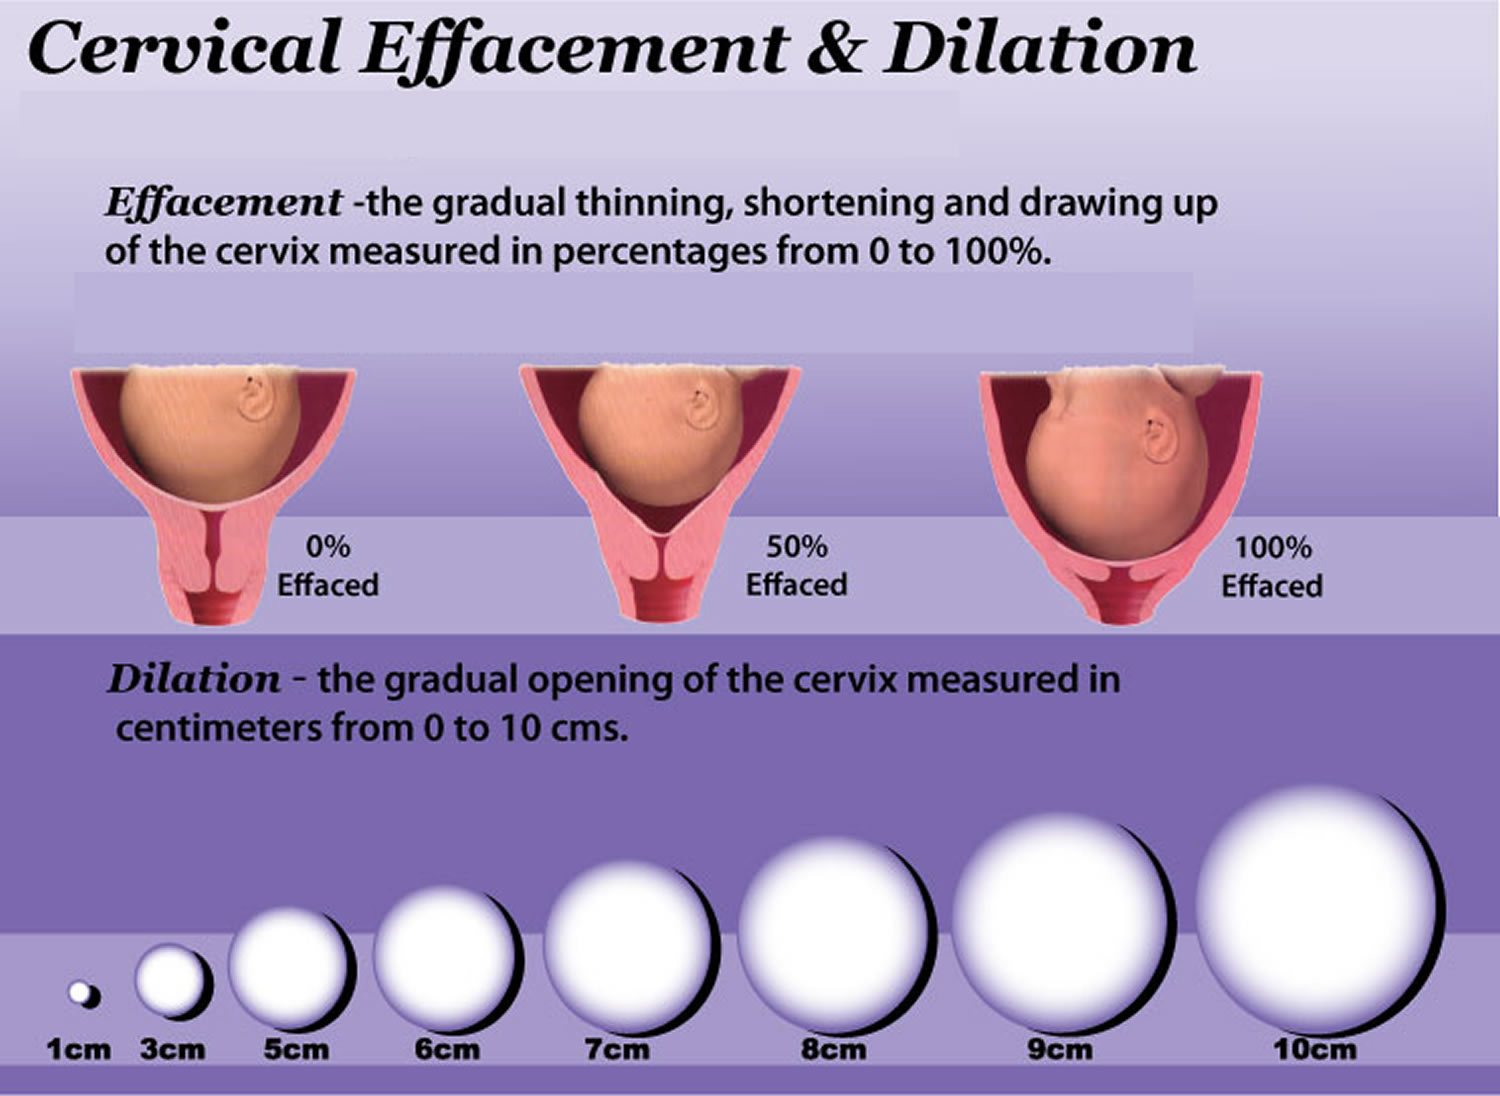 cervix effacement and dilatation